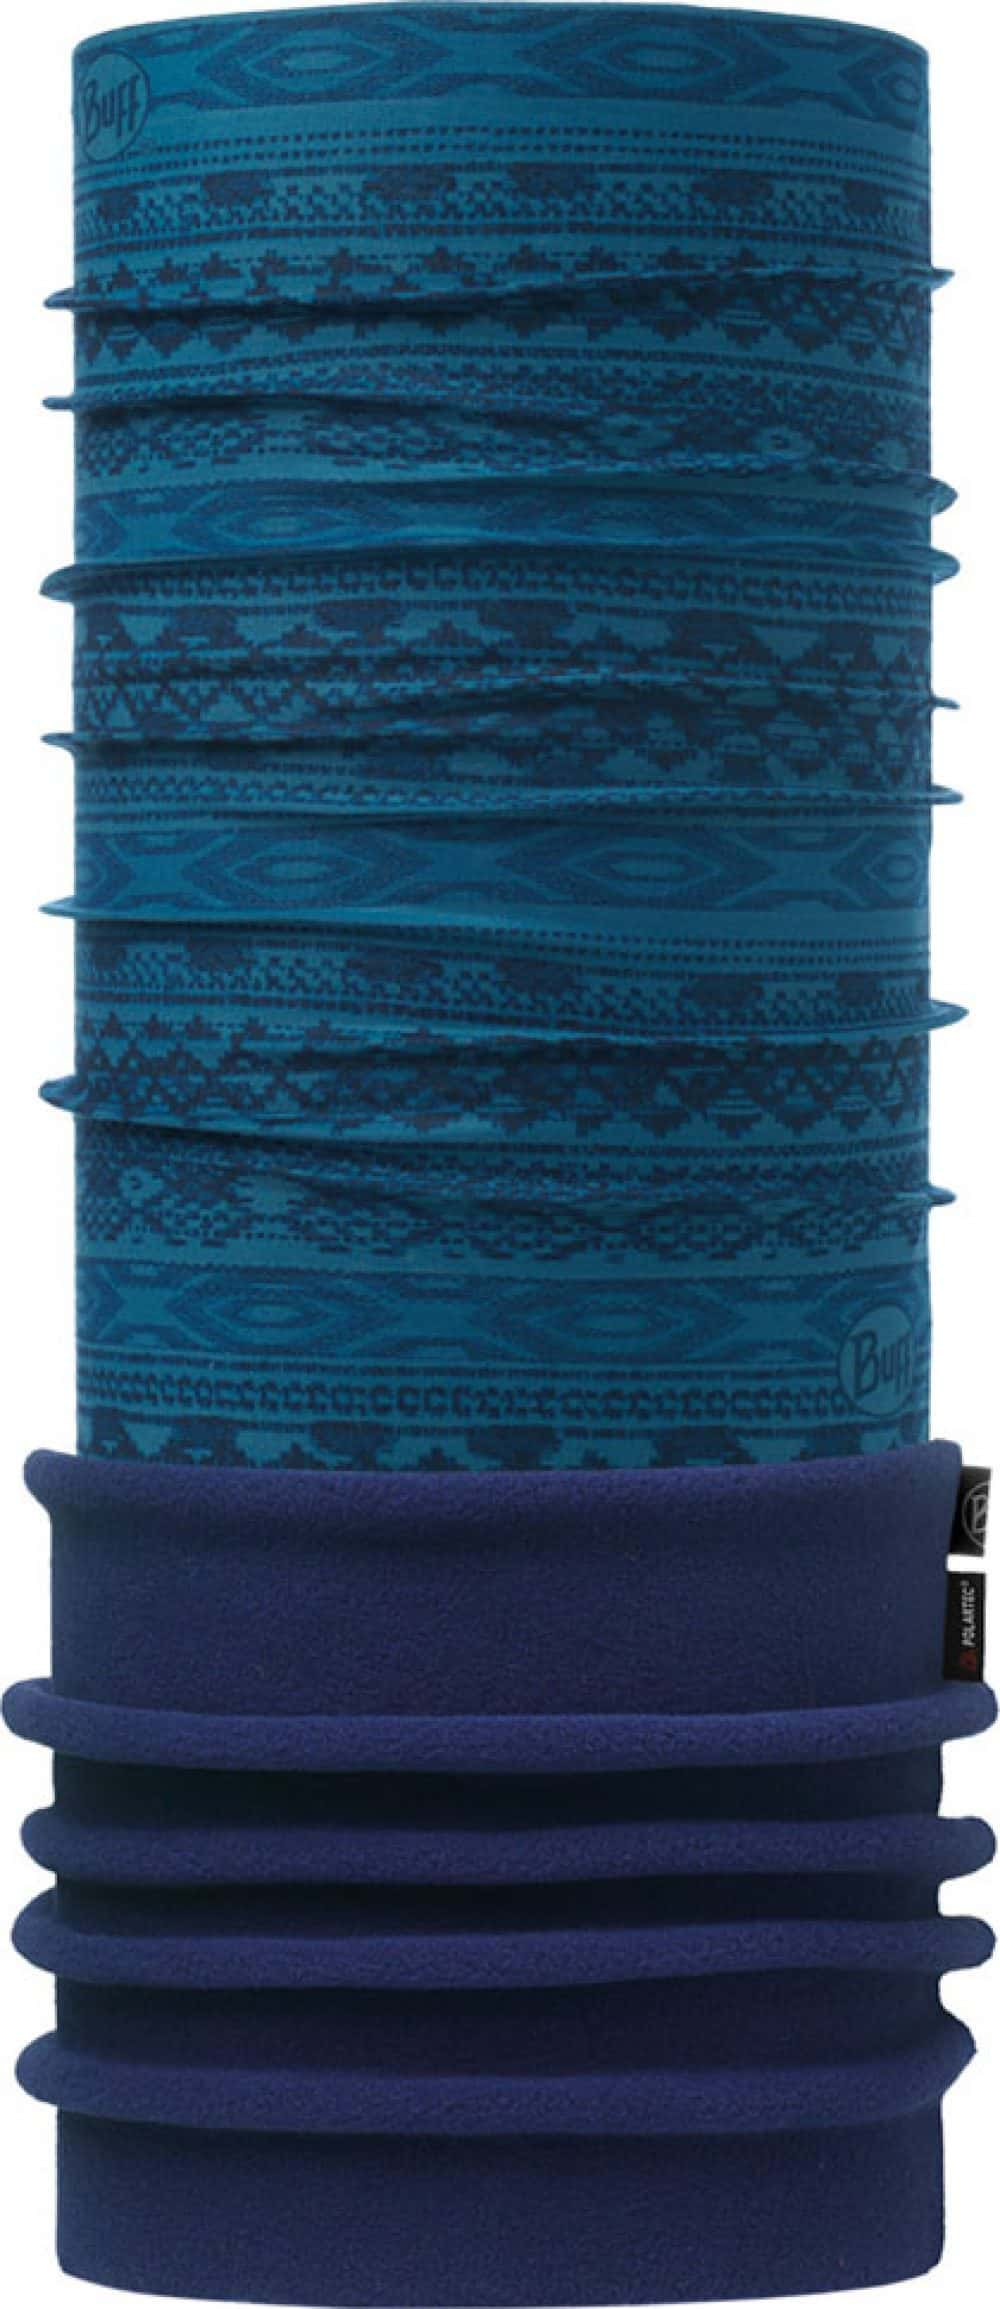 "Studio Photo of the Polar Buff® Design ""Athor Lake / Blue"". Source: buff.eu"